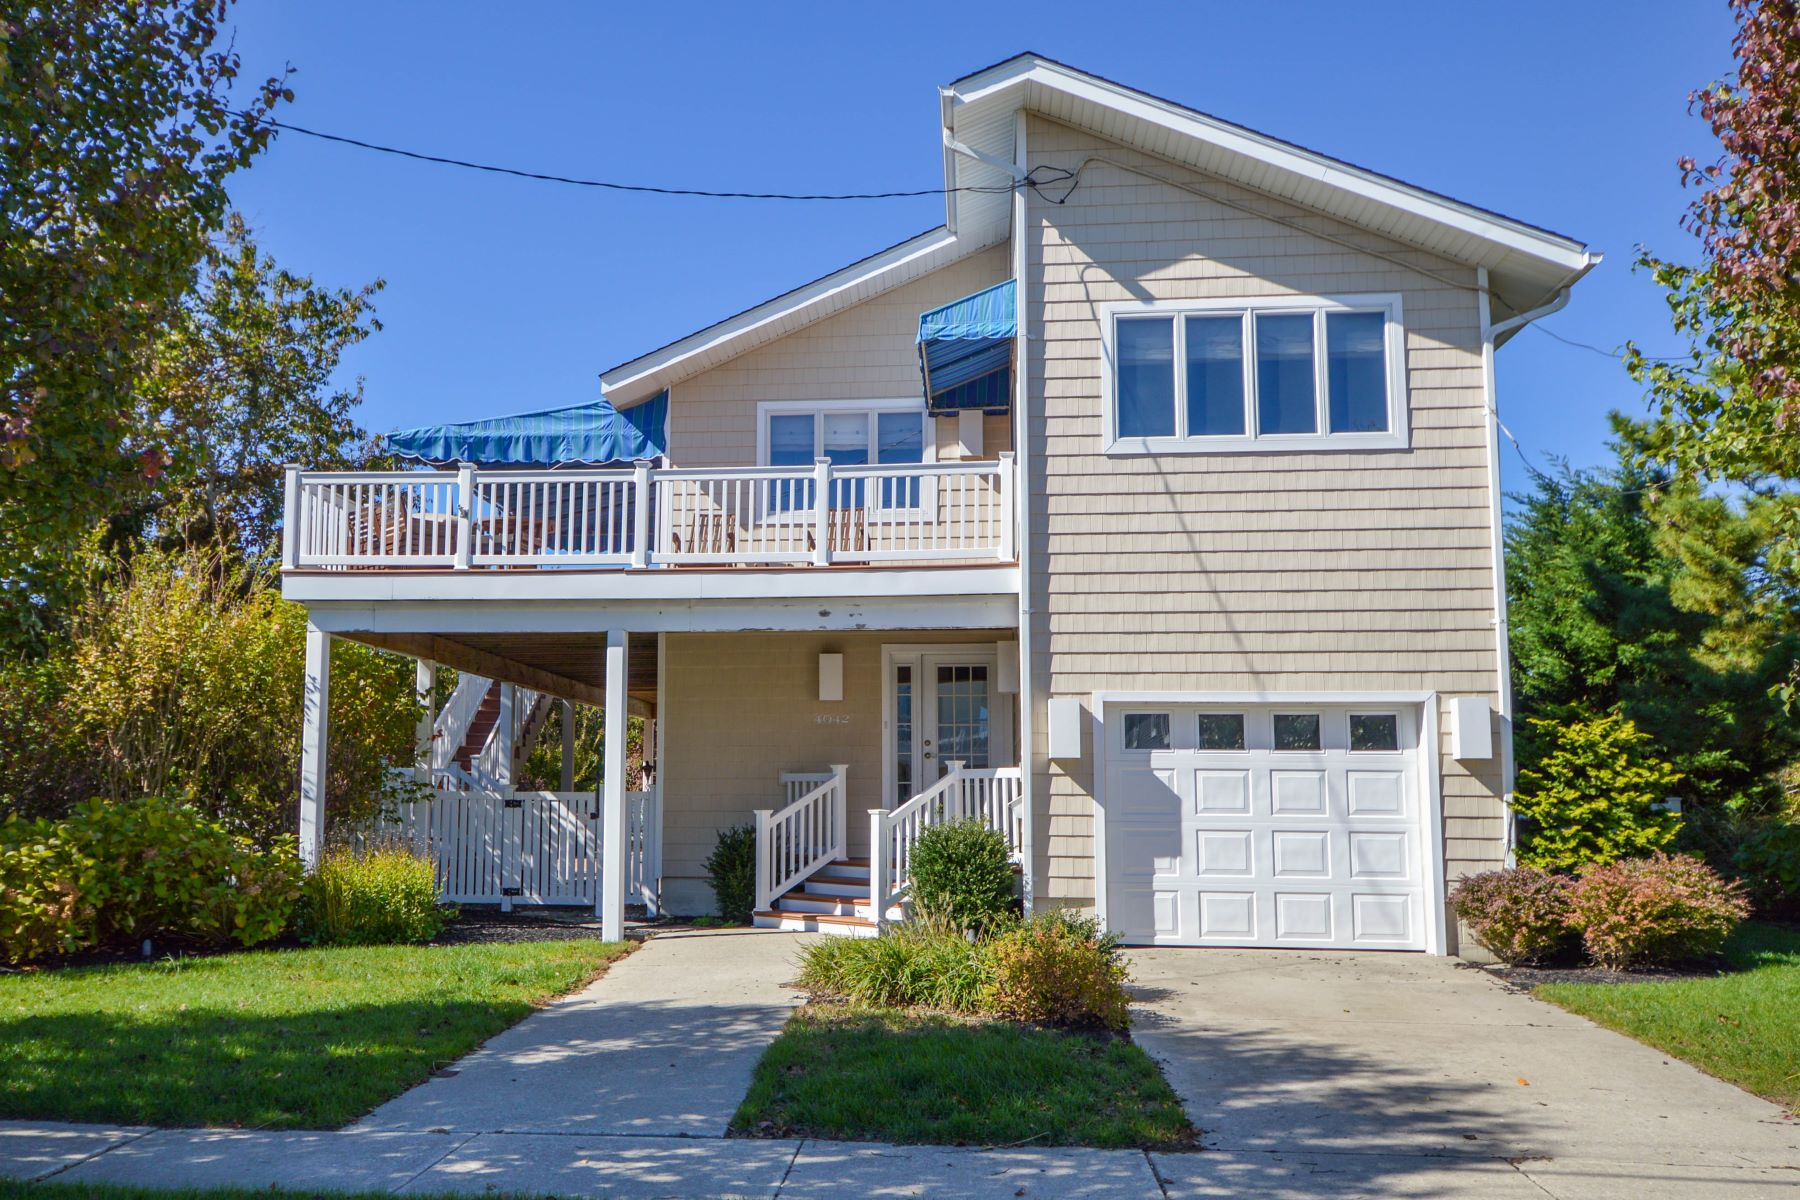 Single Family Homes por un Venta en Beach House With Backyard Oasis 4042 Fourth Avenue Avalon, Nueva Jersey 08202 Estados Unidos